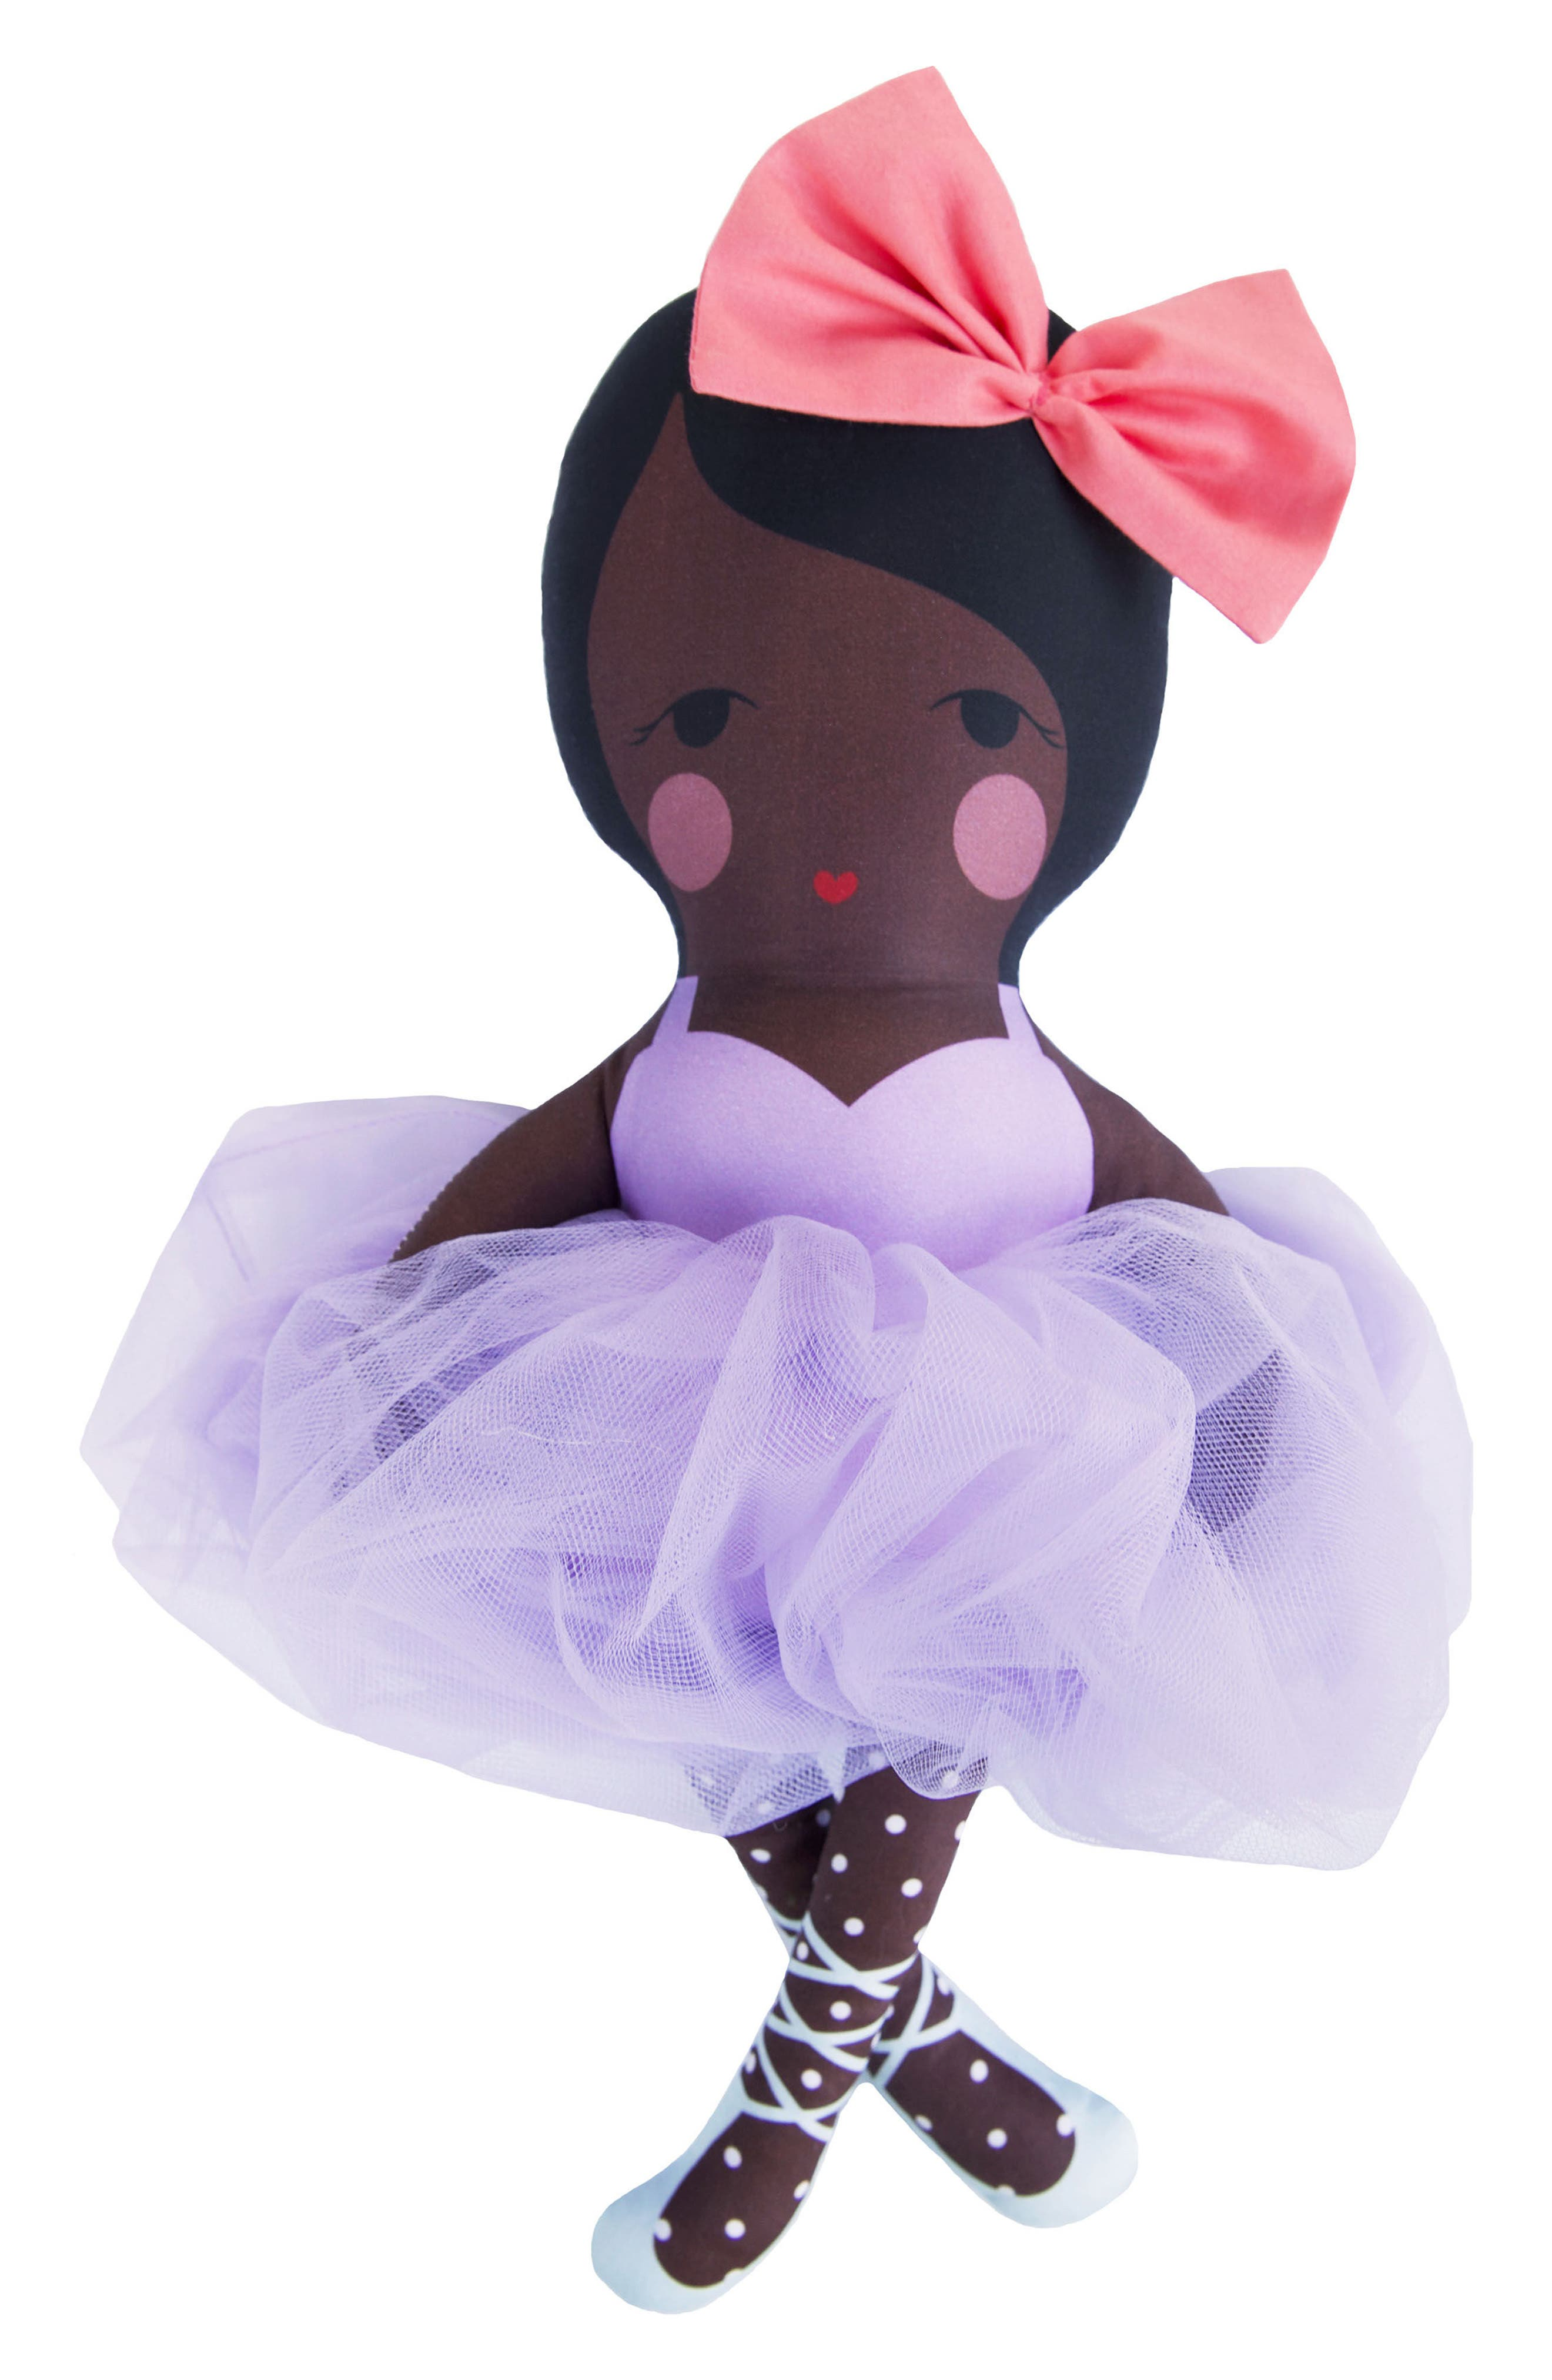 Candy Kirby Designs Raven Ballerina Doll